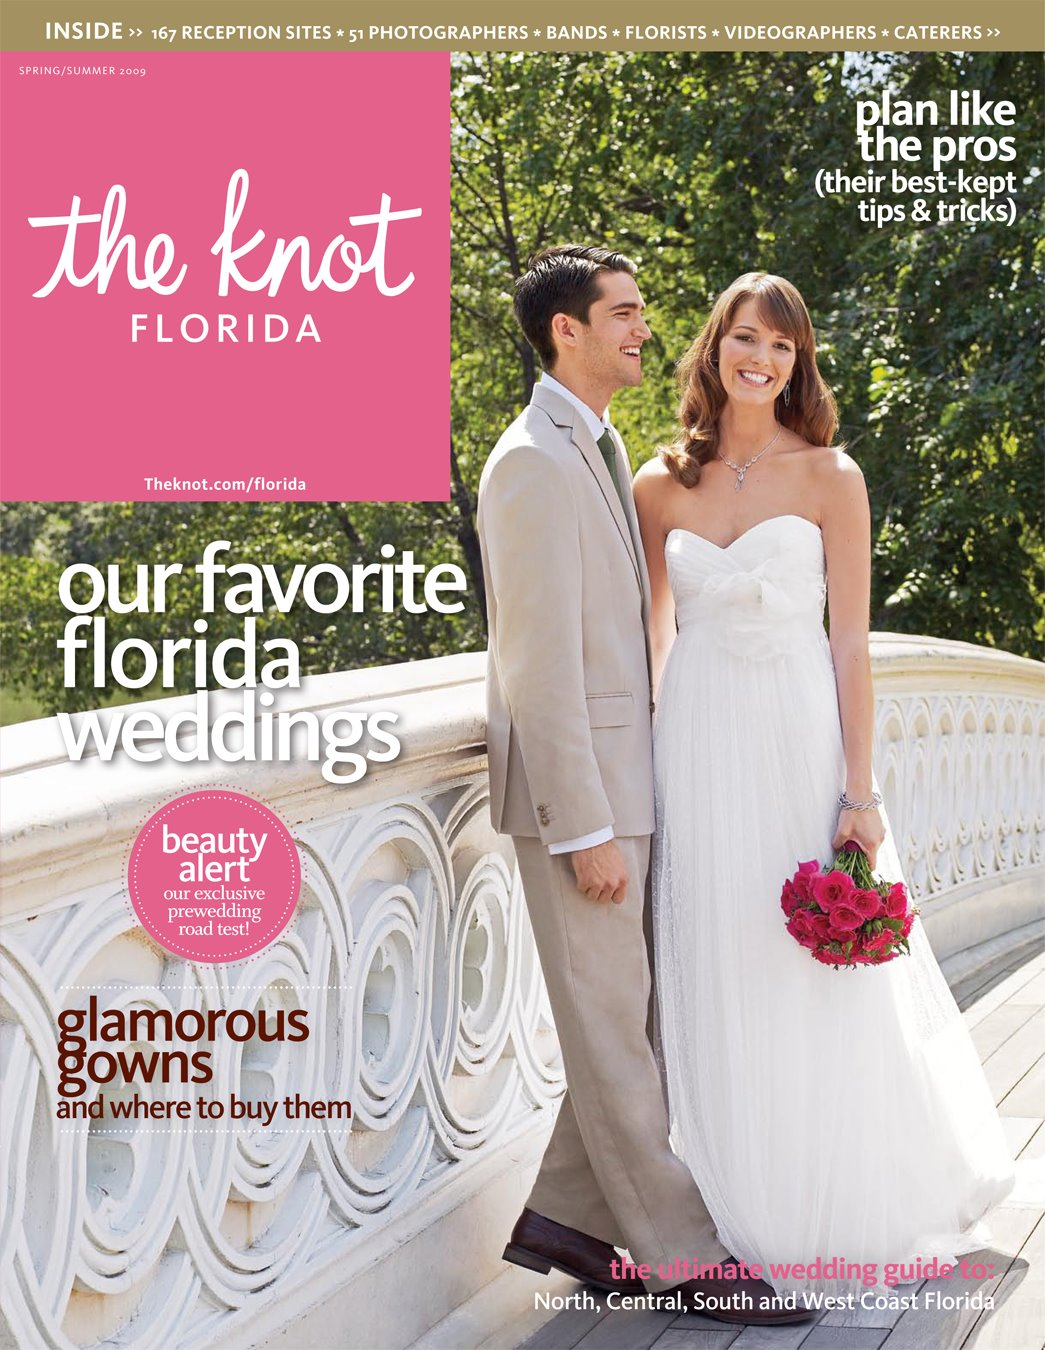 The Knot Spring Summer 2009